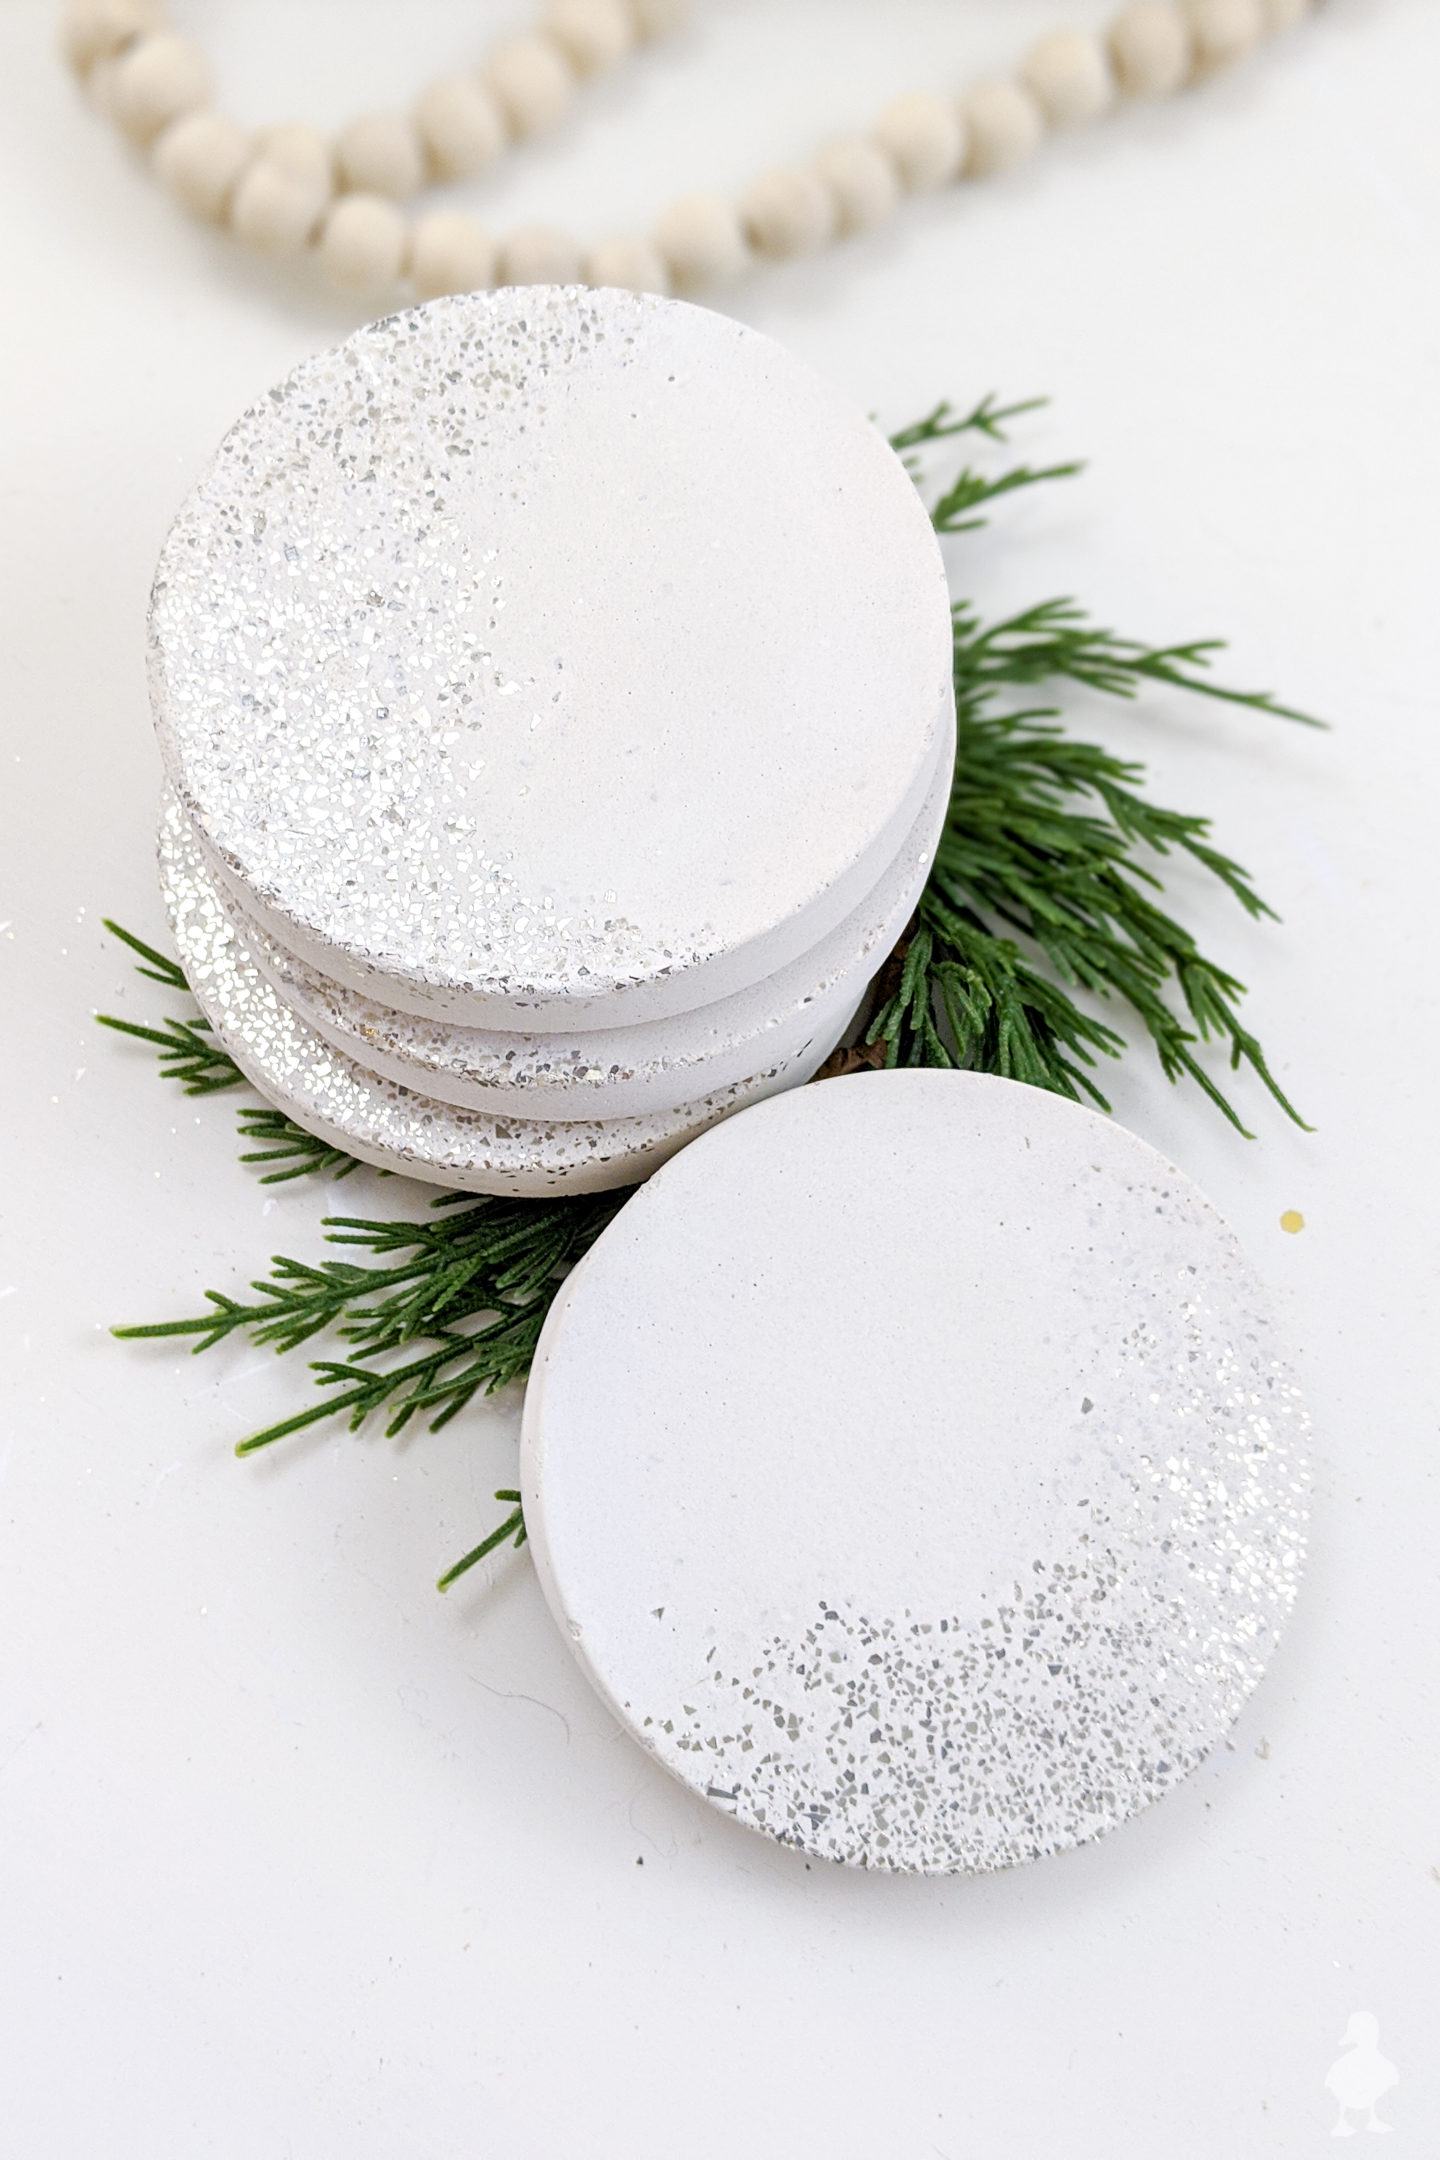 Sliver glitter white concrete coasters make a great glittery addition to Christmas decor. Also a good party hostess gift or NYE decor! #newyears #concrete #glitter #whiteconcrete #hostess #partydecoration #bohochristmas